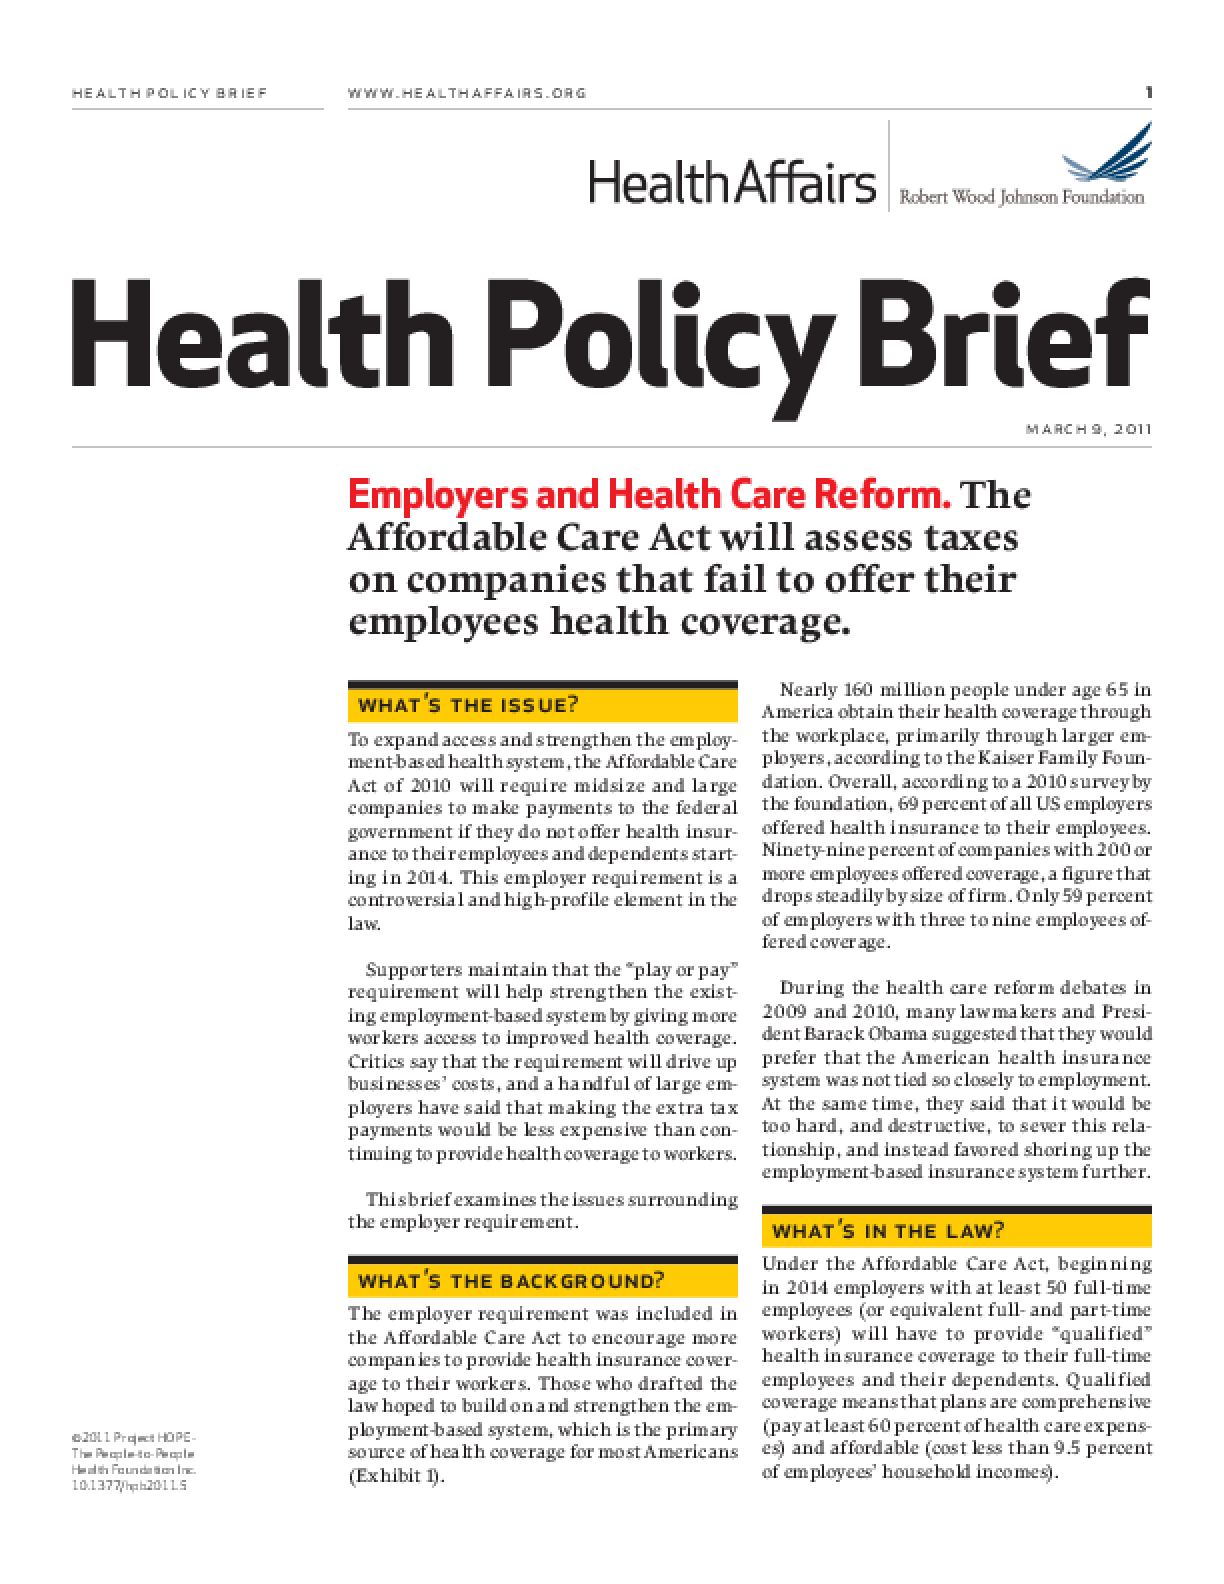 Health Affairs/RWJF Health Policy Brief: Employers and Health Care Reform